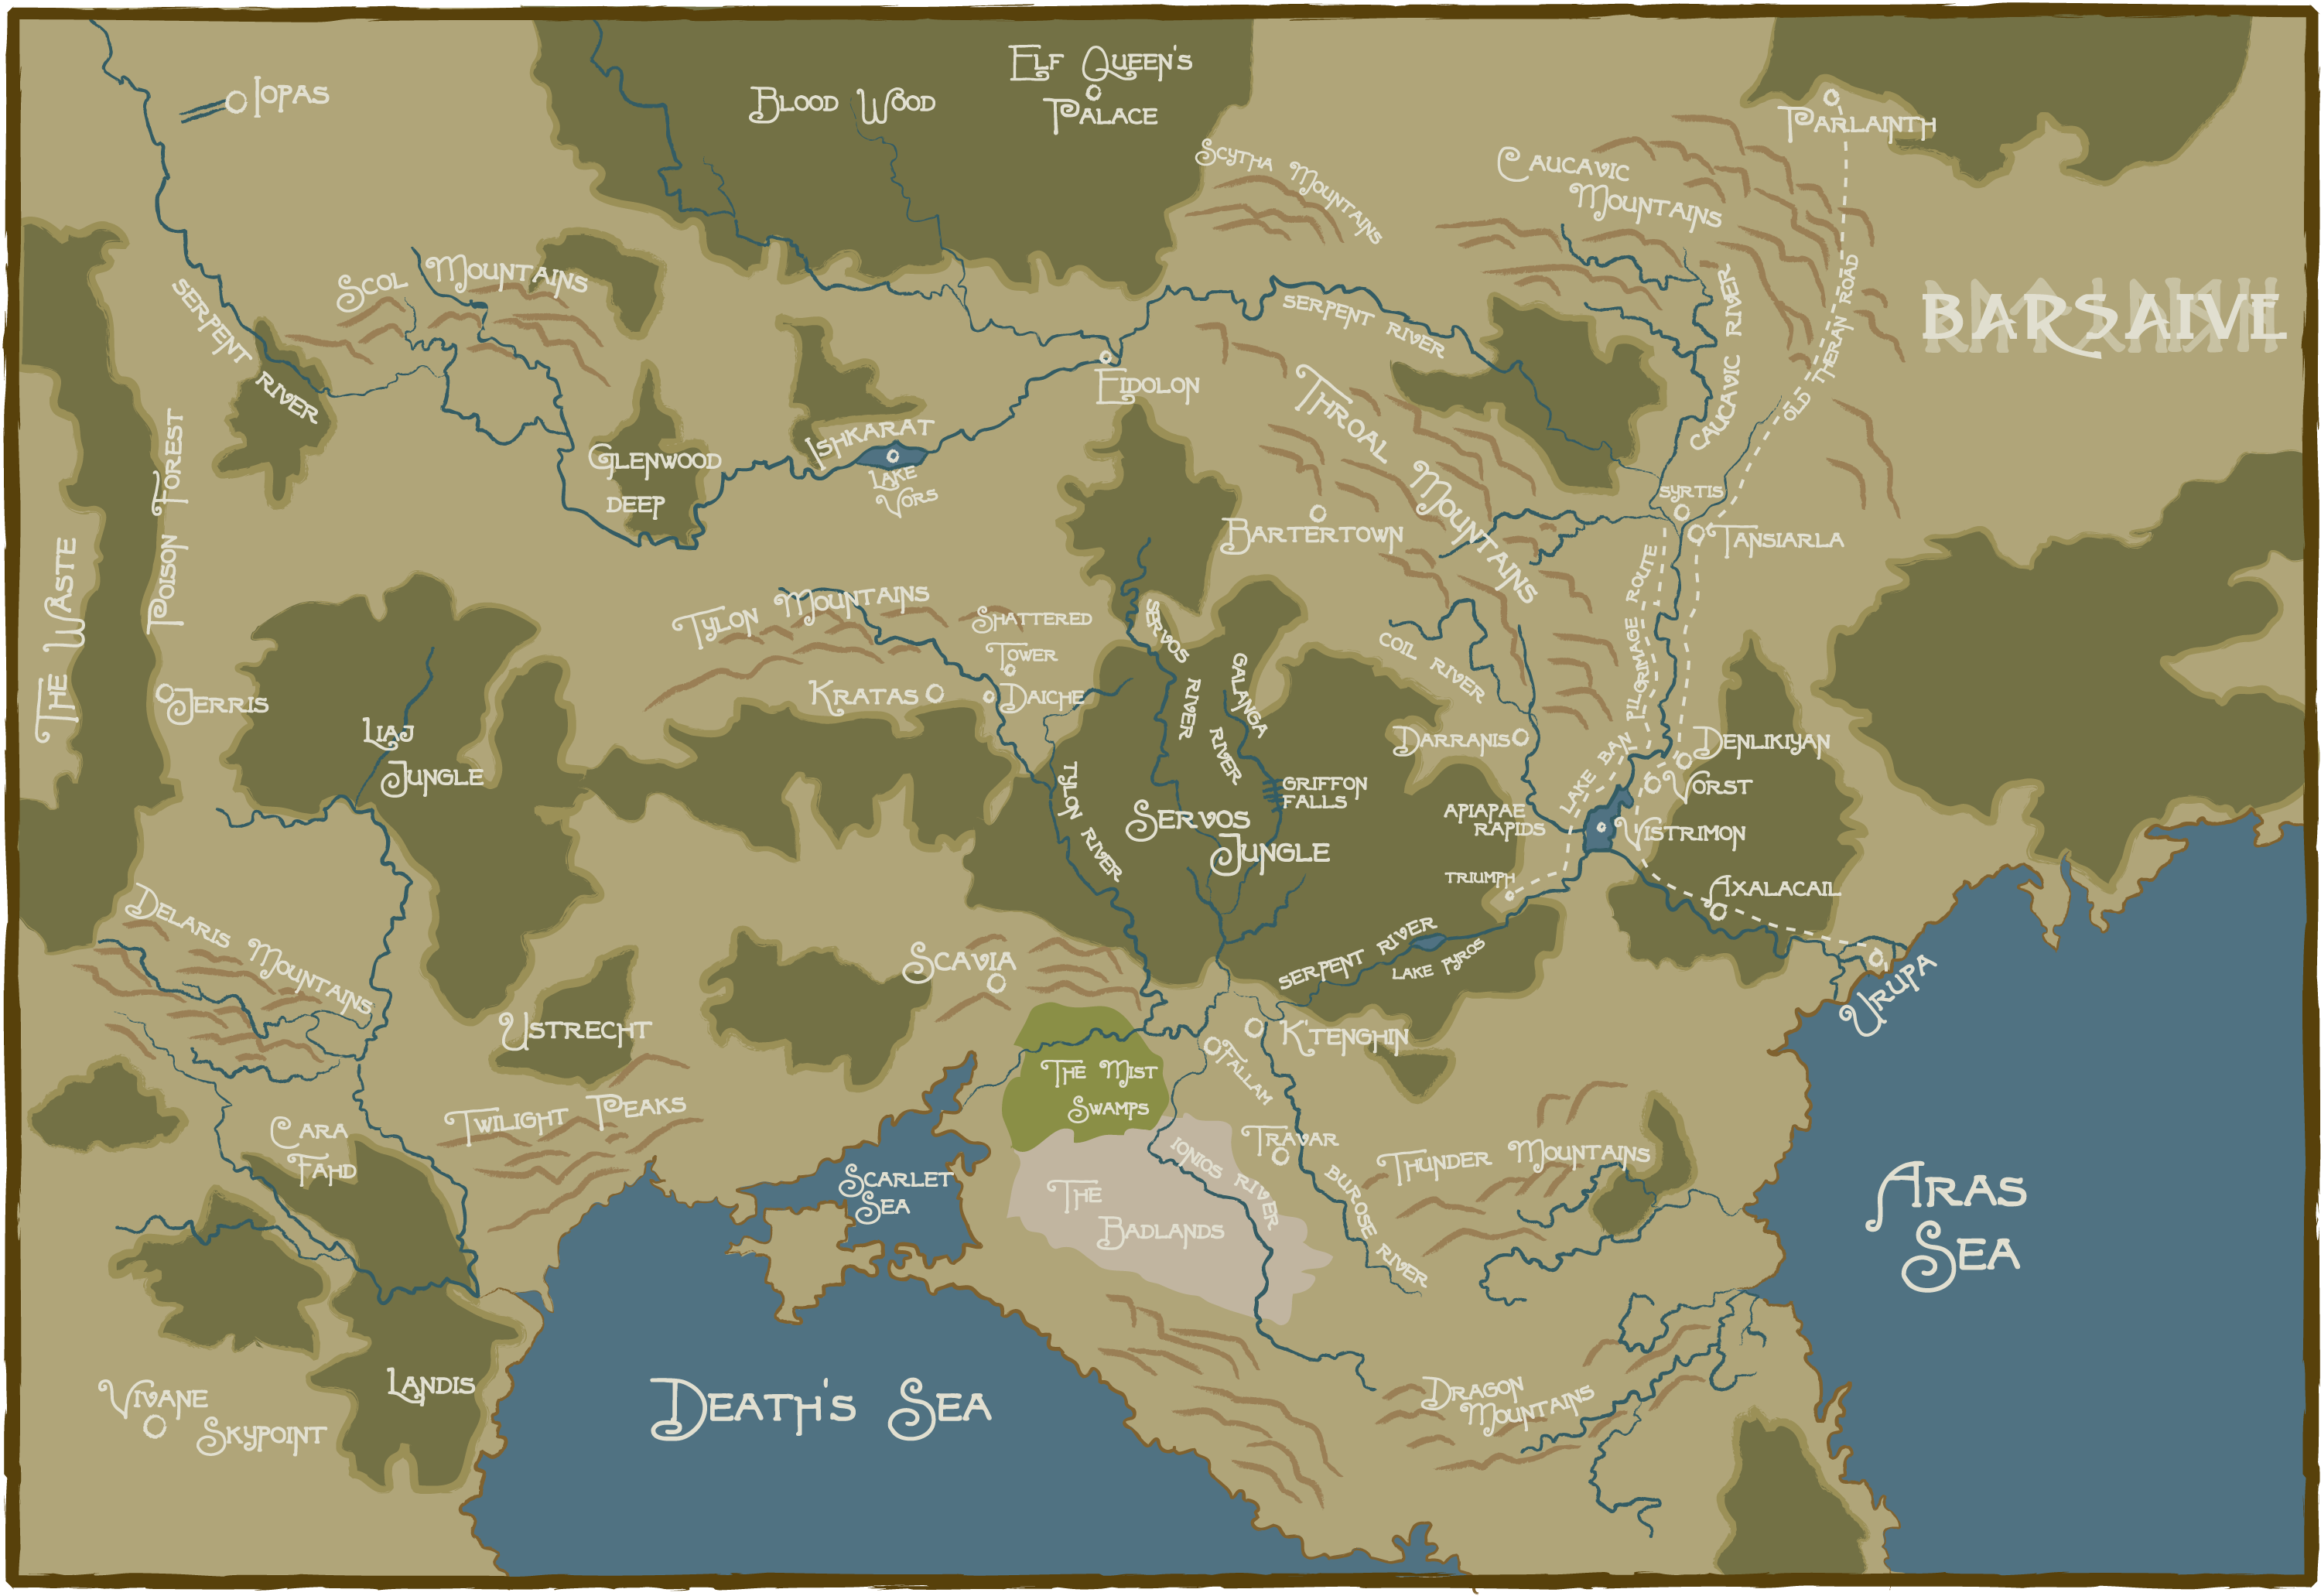 Pin by PINVERSE 020 on RPG # GURPS | Fantasy world map ...